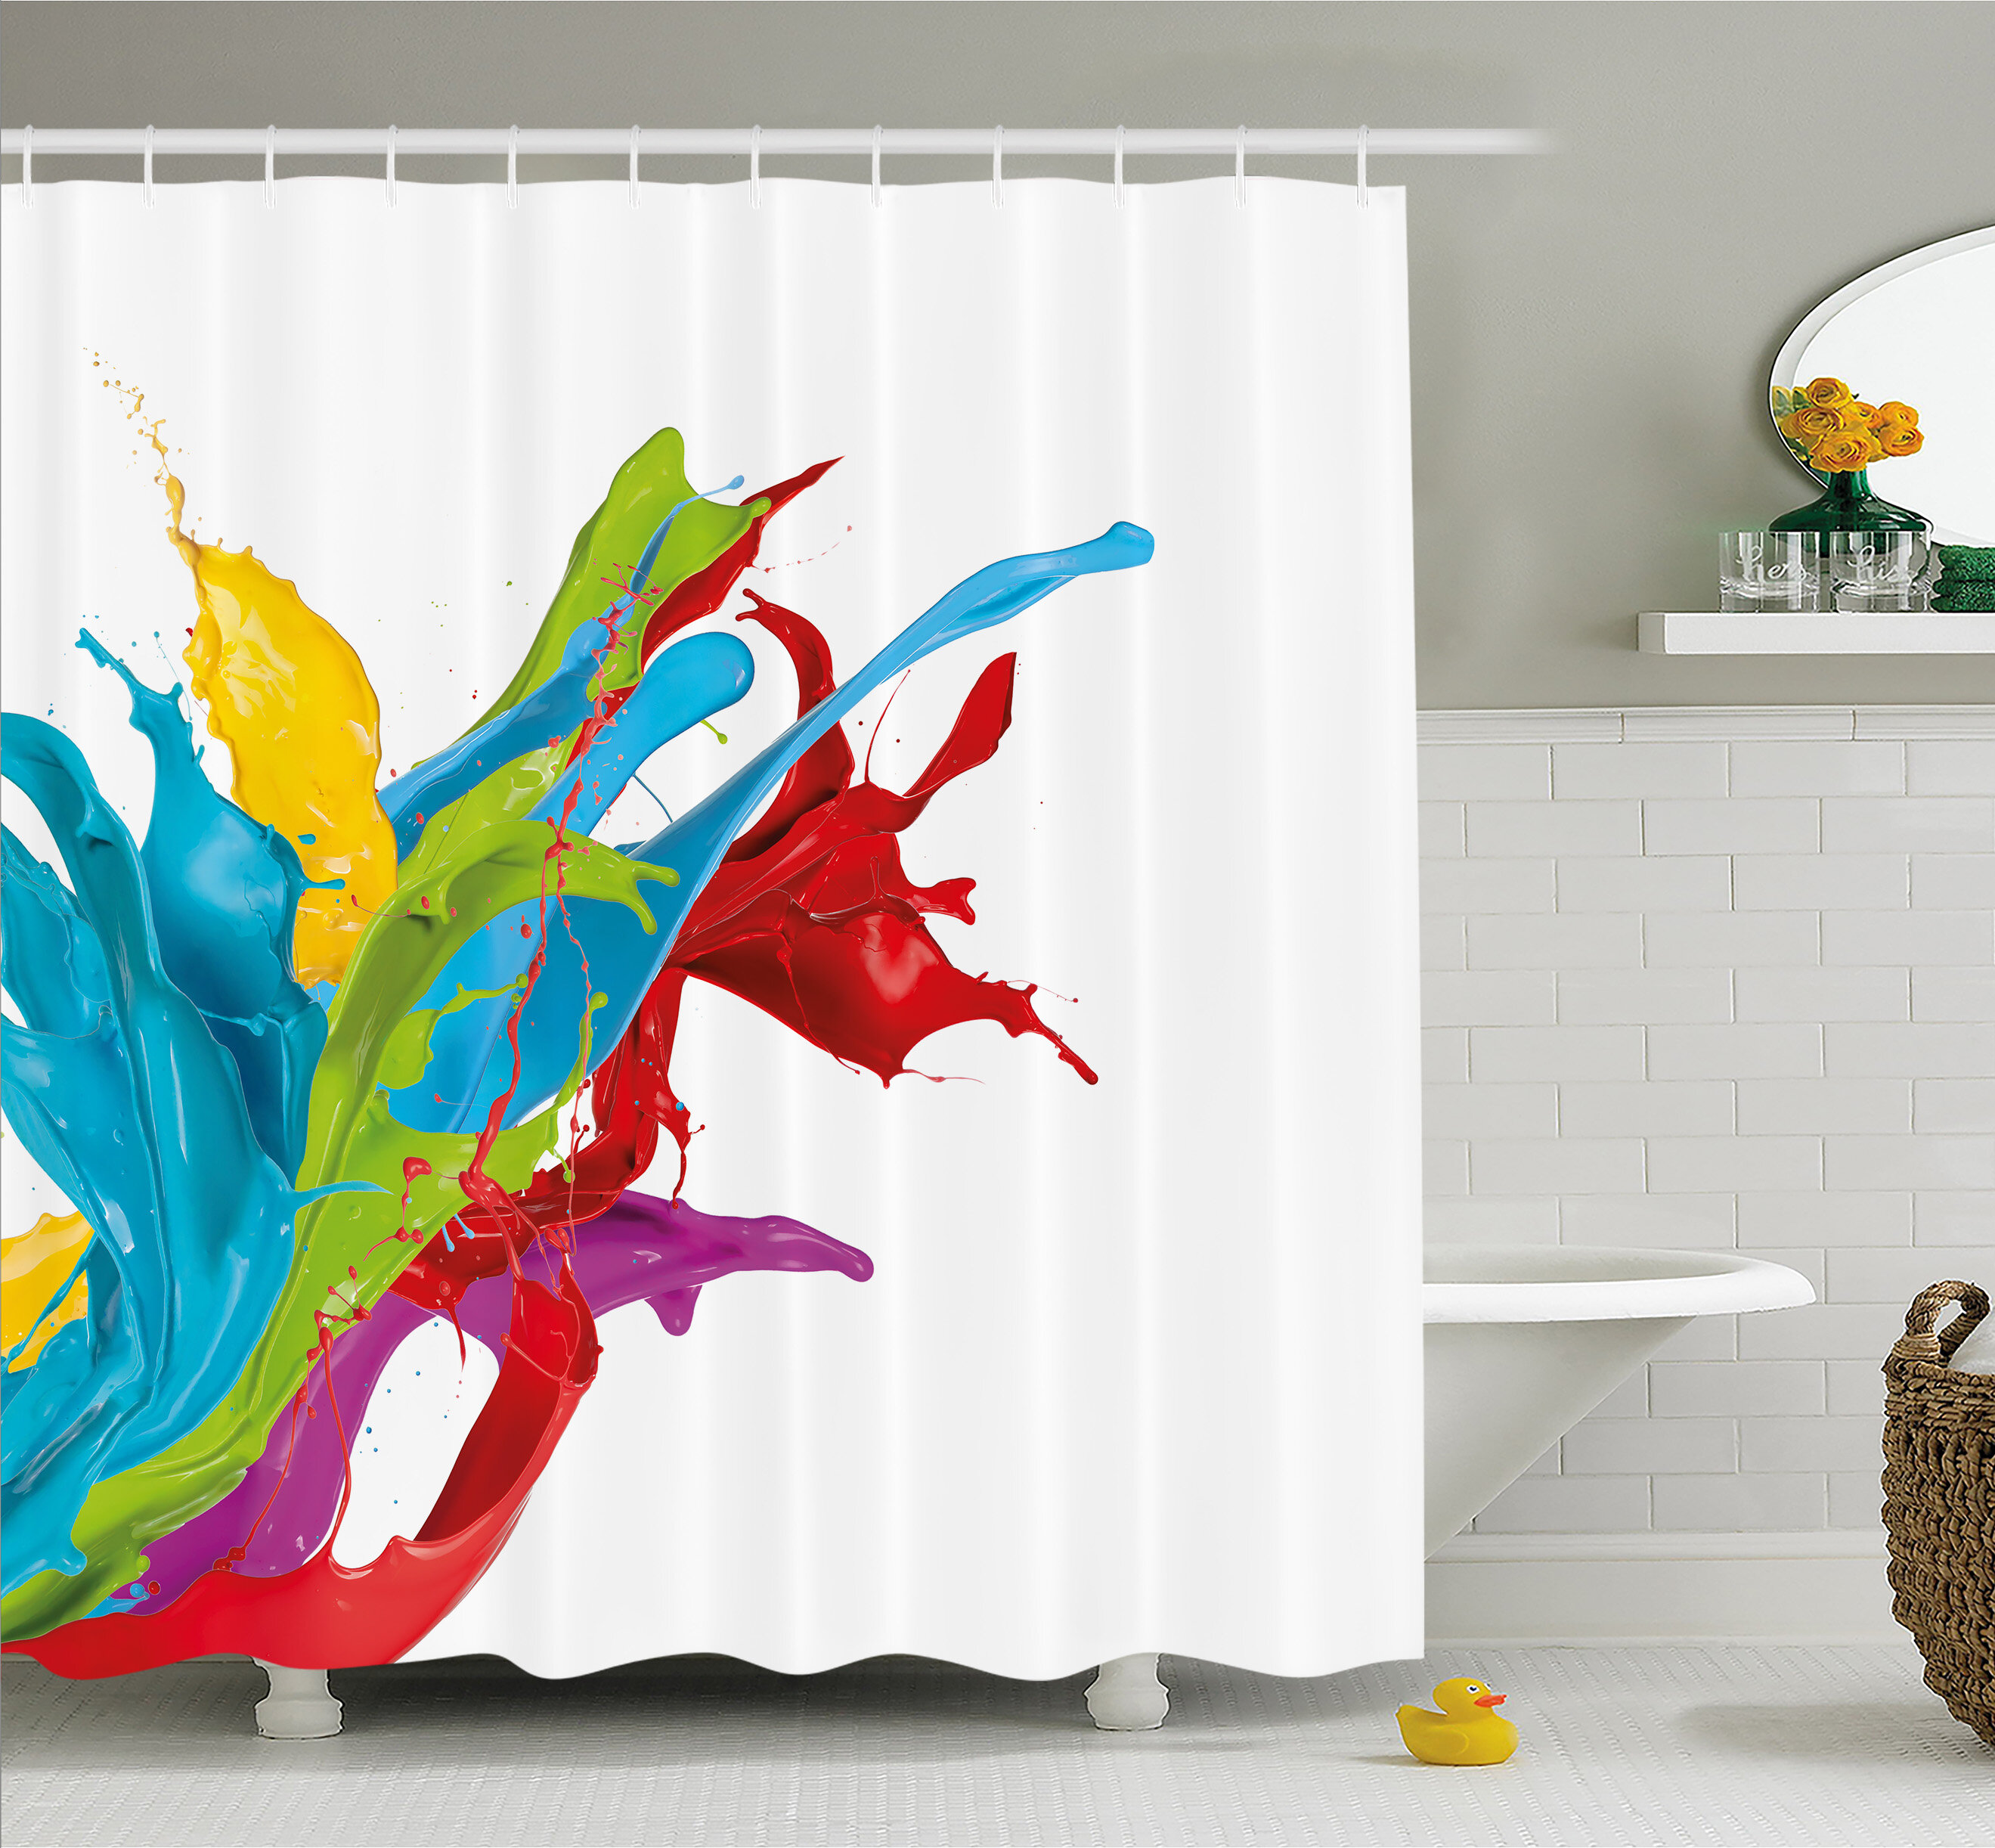 Ambesonne Colourful Home Surreal Fluid Liquid Flowing Paint Splash Featured Digital Artful Graphic Shower Curtain Set Reviews Wayfair Ca